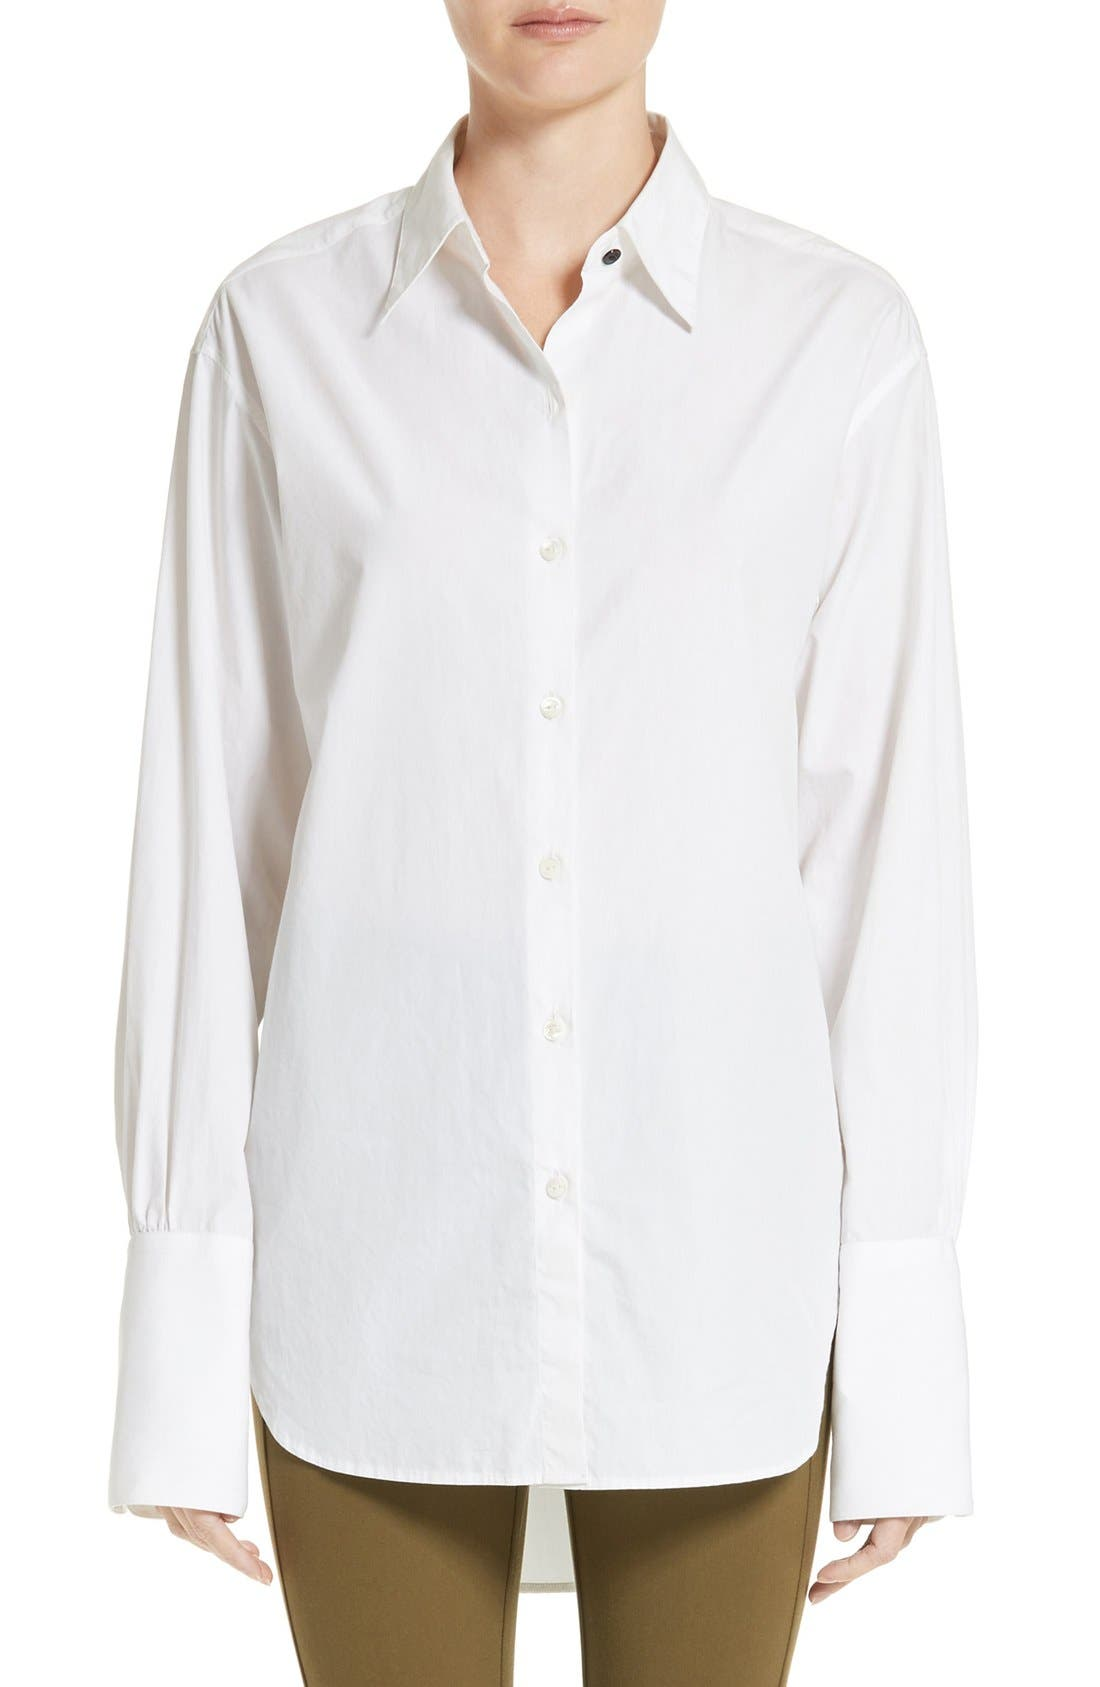 RAG & BONE Essex Poplin Shirt